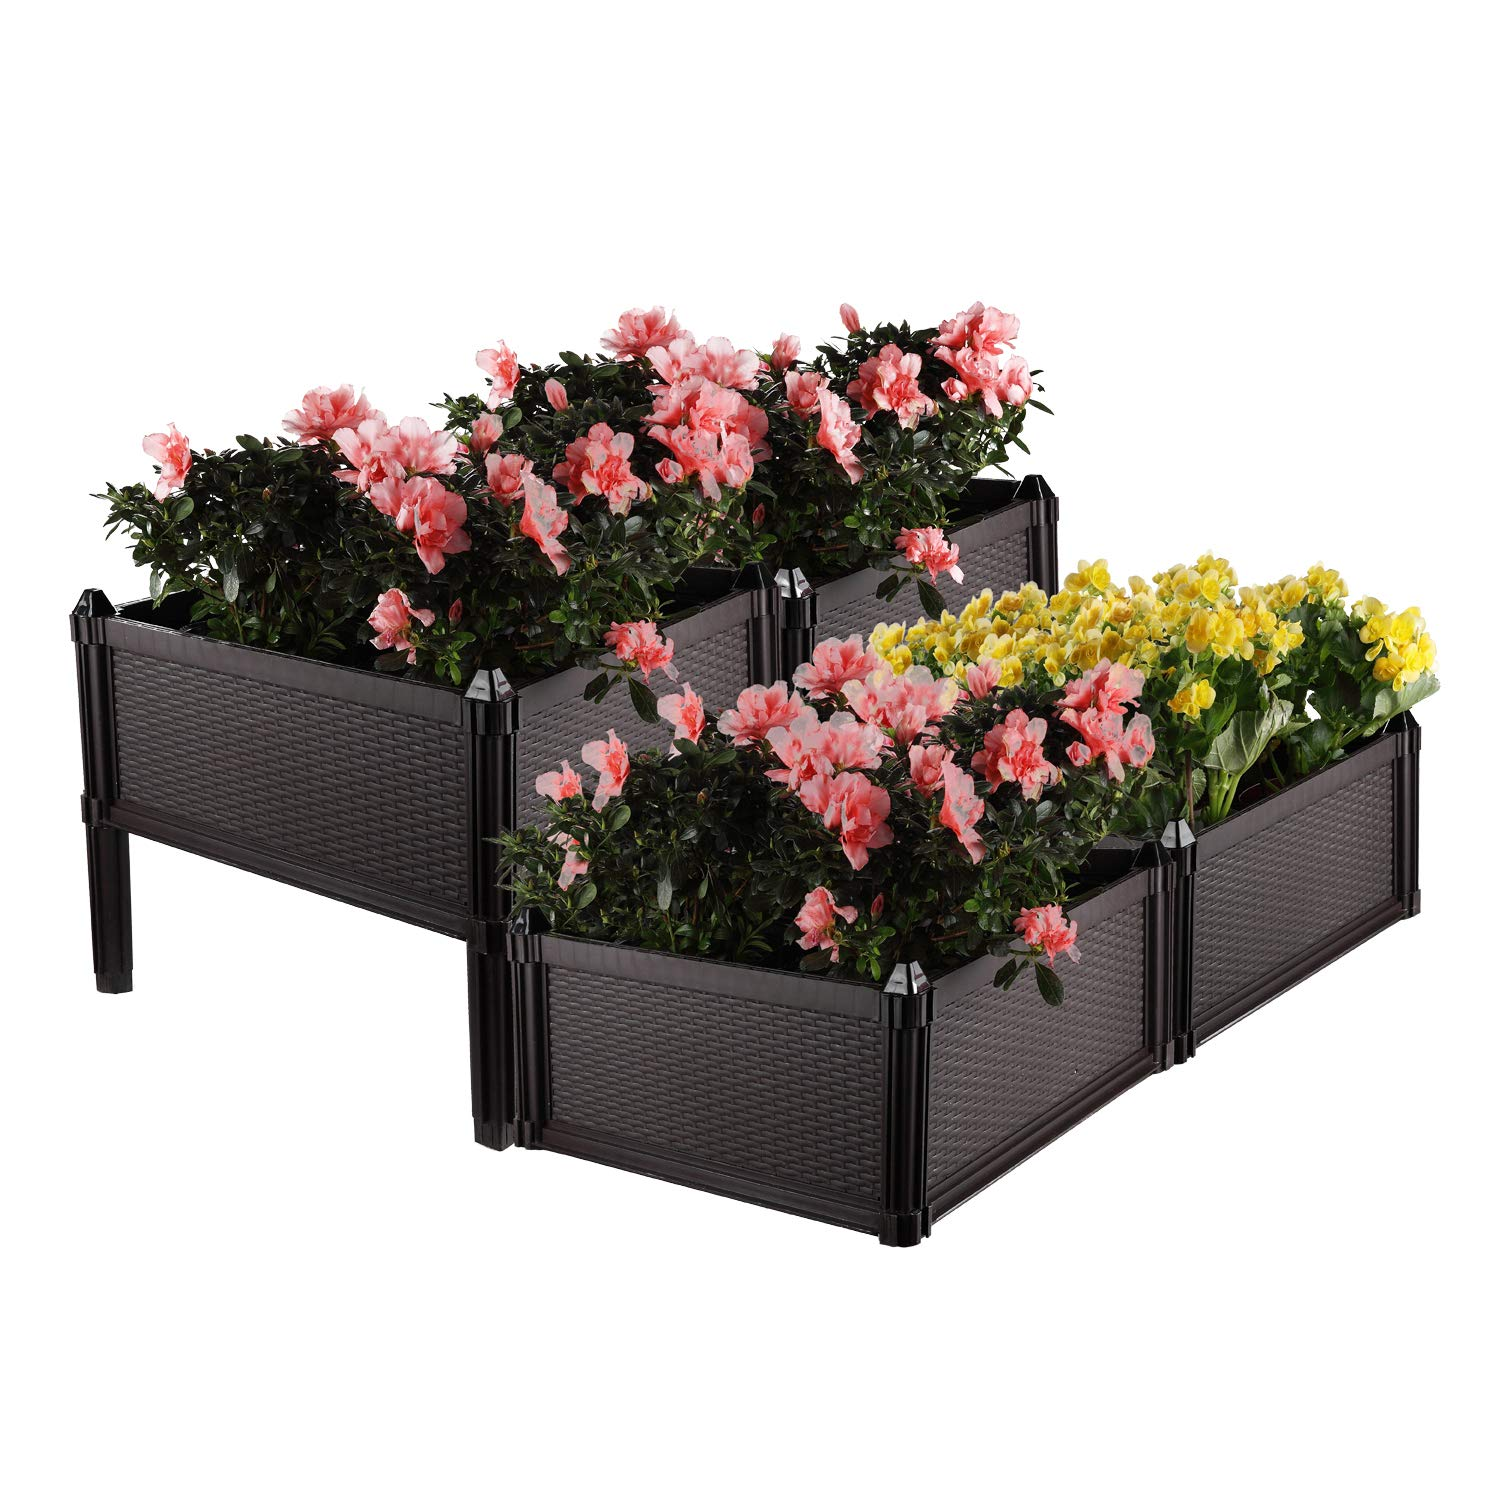 T4u Plastic Elevated Raised Garden Bed Kits For Flowers And Vegetables Easy Assembly Planter Box Container For Indoor Outdoor Patio Backyard Porch